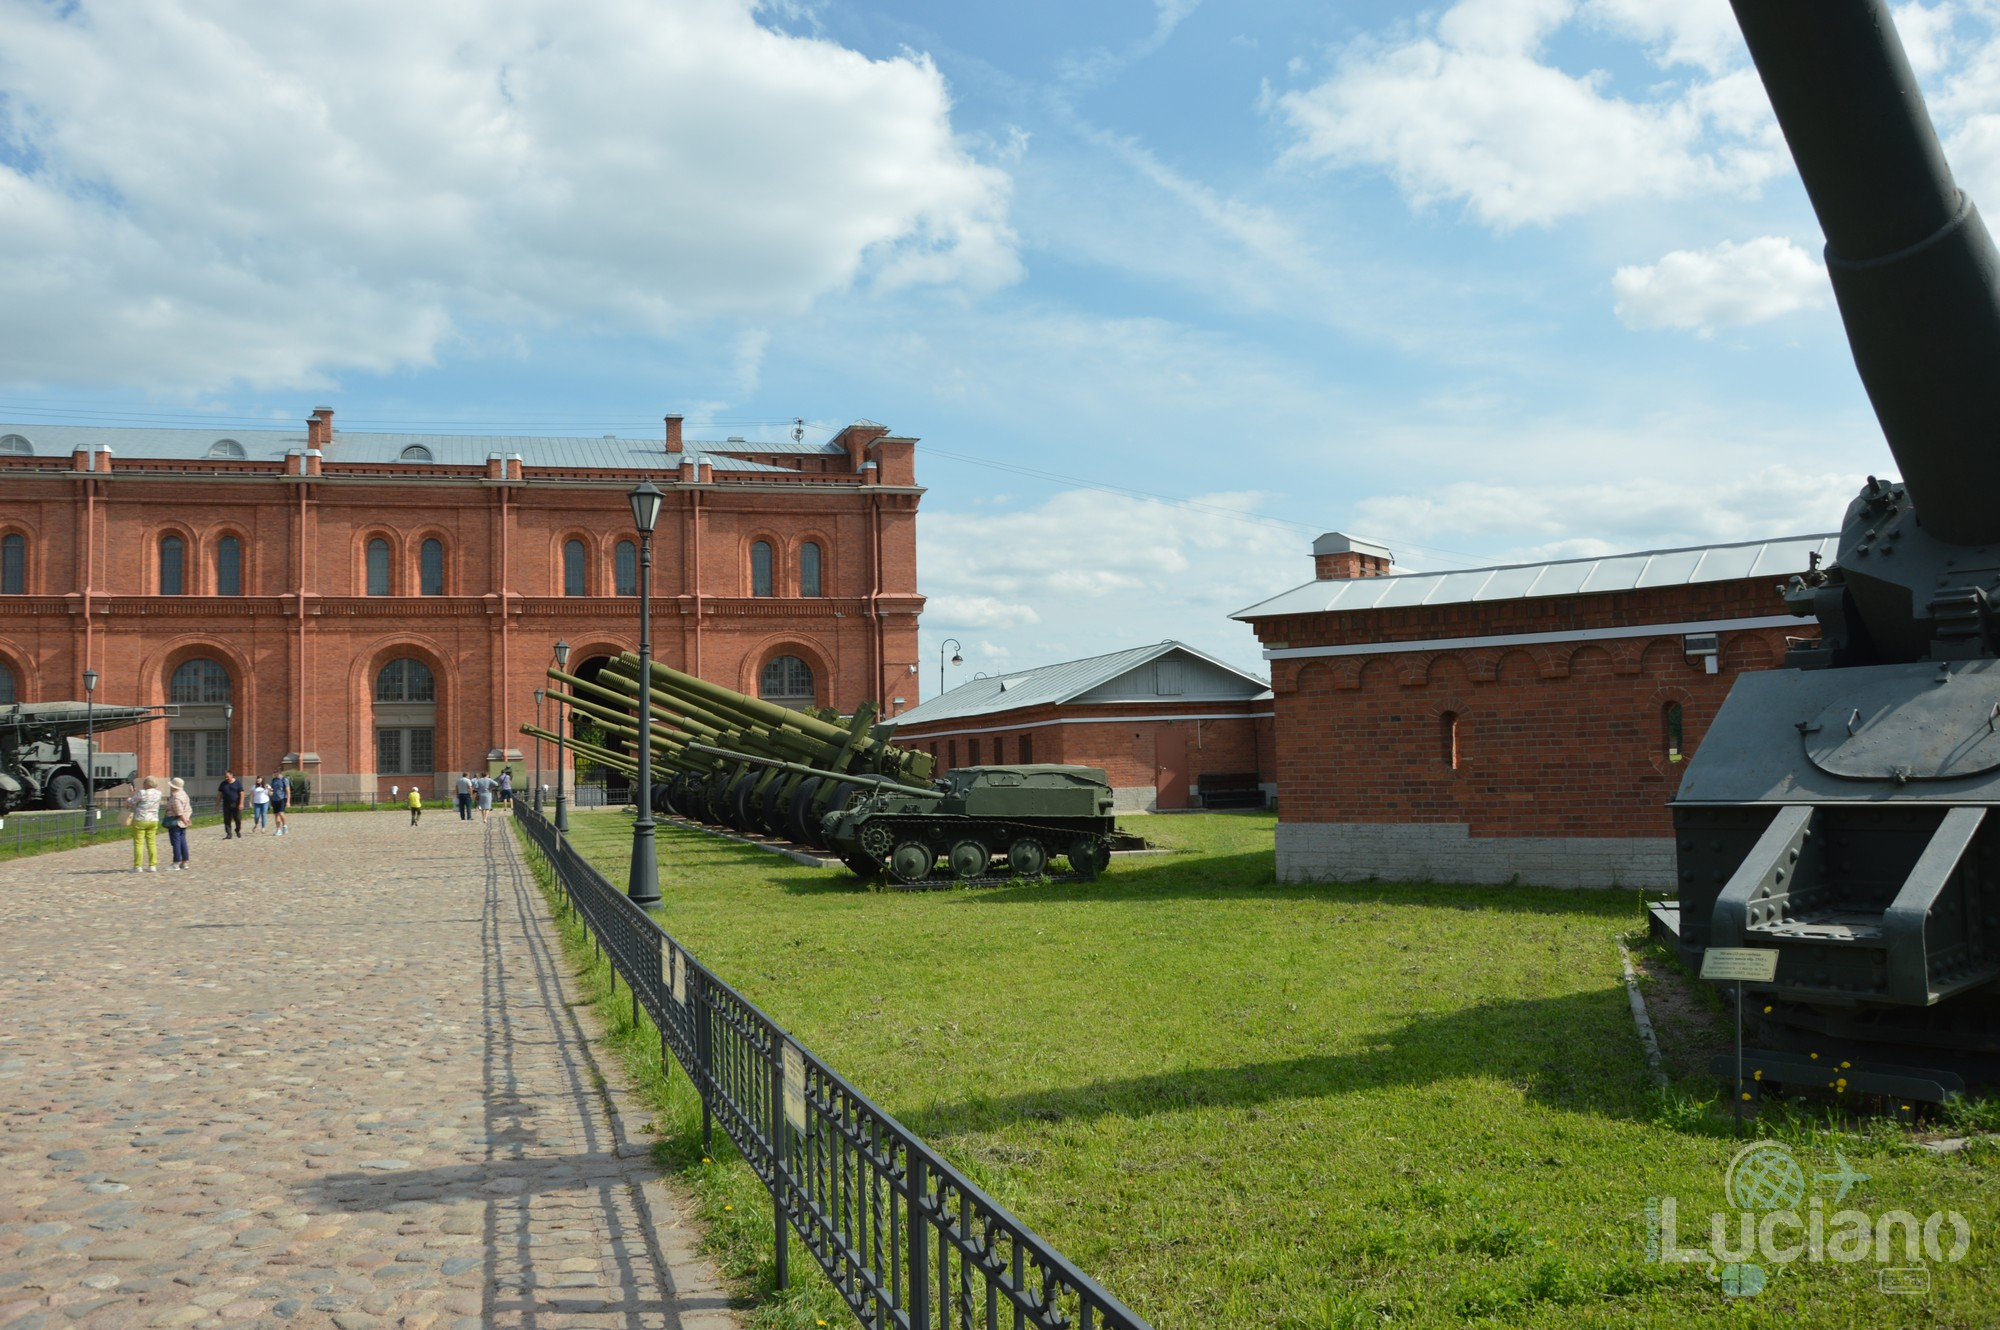 Military-Historical-Museum-of-Artillery-Engineer-and-Signal-Corps-St-Petersburg-Russia-Luciano-Blancato- (11)